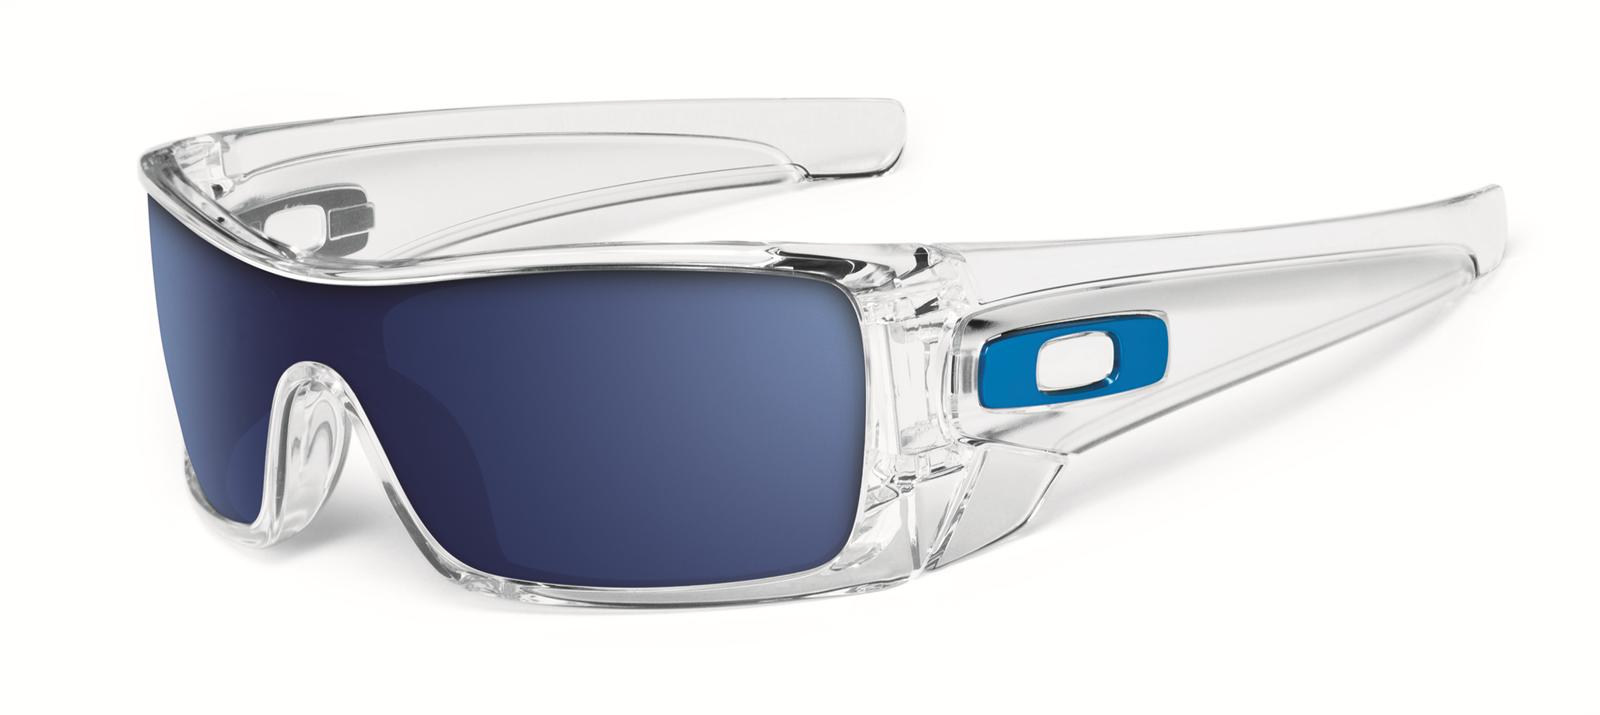 e970d23e25 Oakley Batwolf Sunglasses OO9101-07 - Free Shipping on Orders Over  99 at  Summit Racing